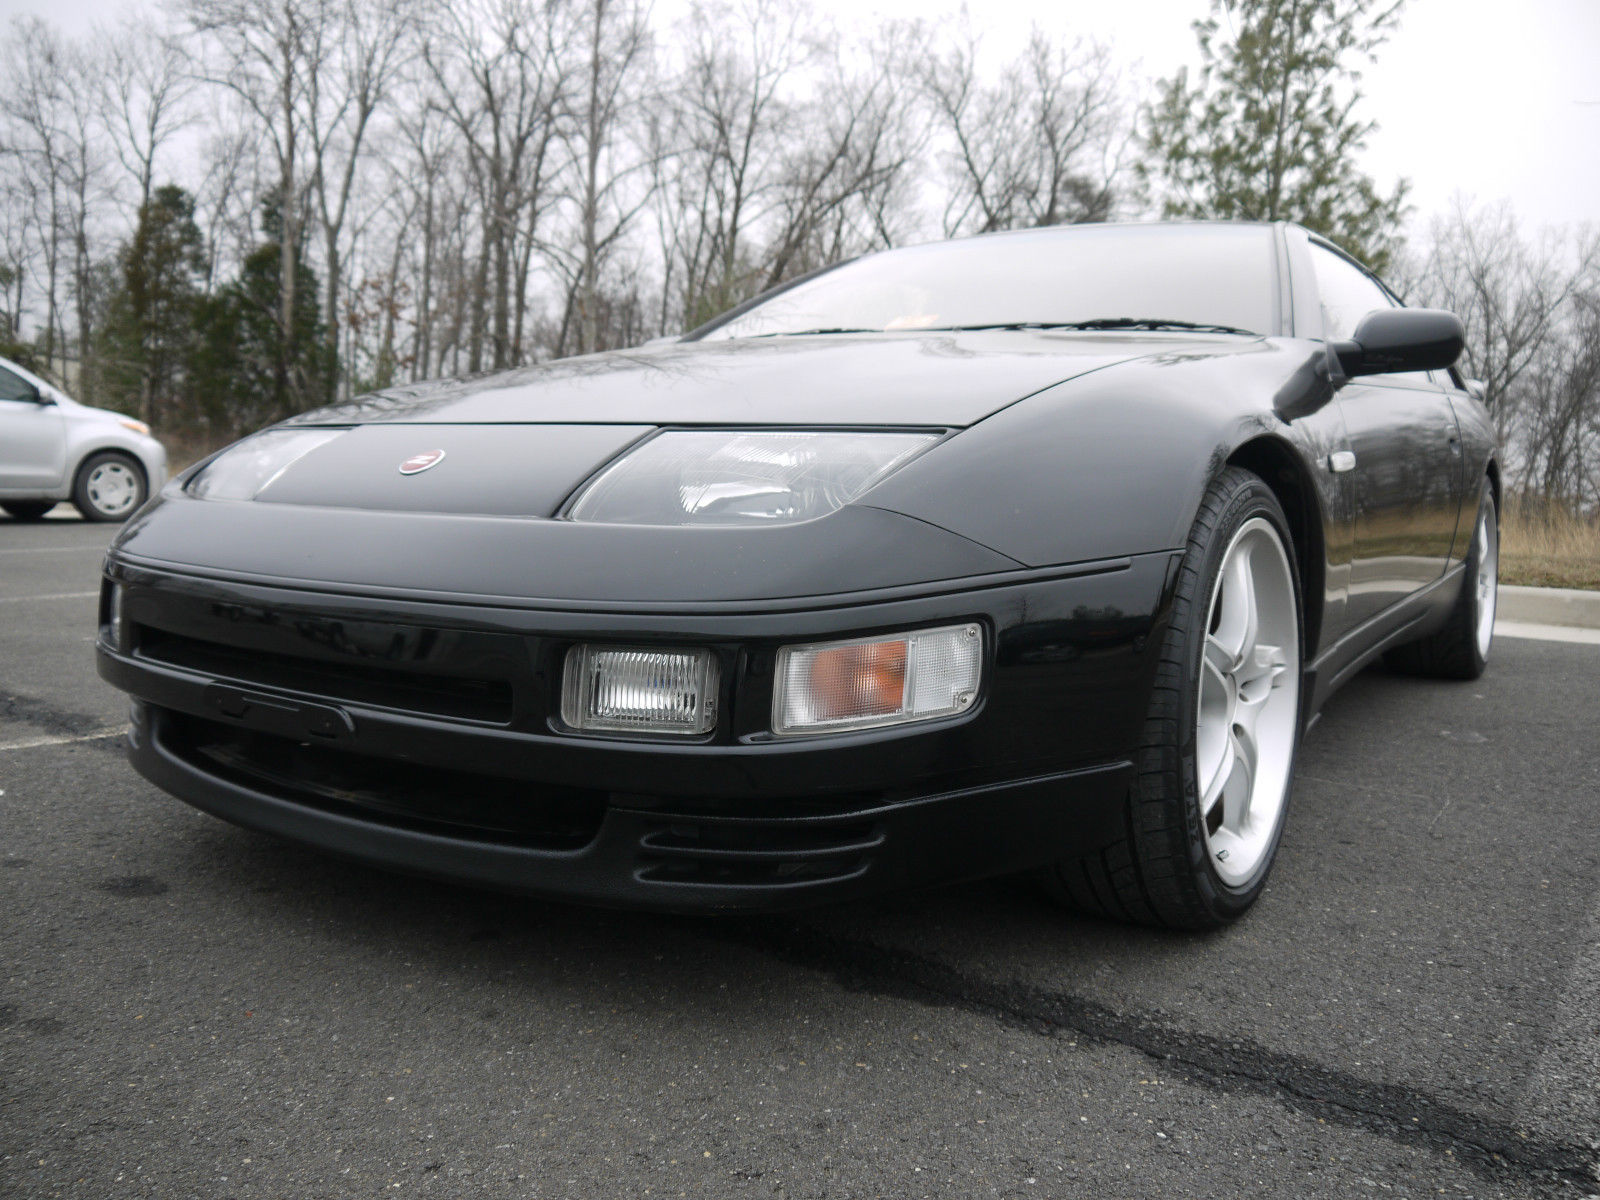 1989 nissan 300zx twin turbo fairlady z z32 tt jdm rhd imported from japan for sale in. Black Bedroom Furniture Sets. Home Design Ideas